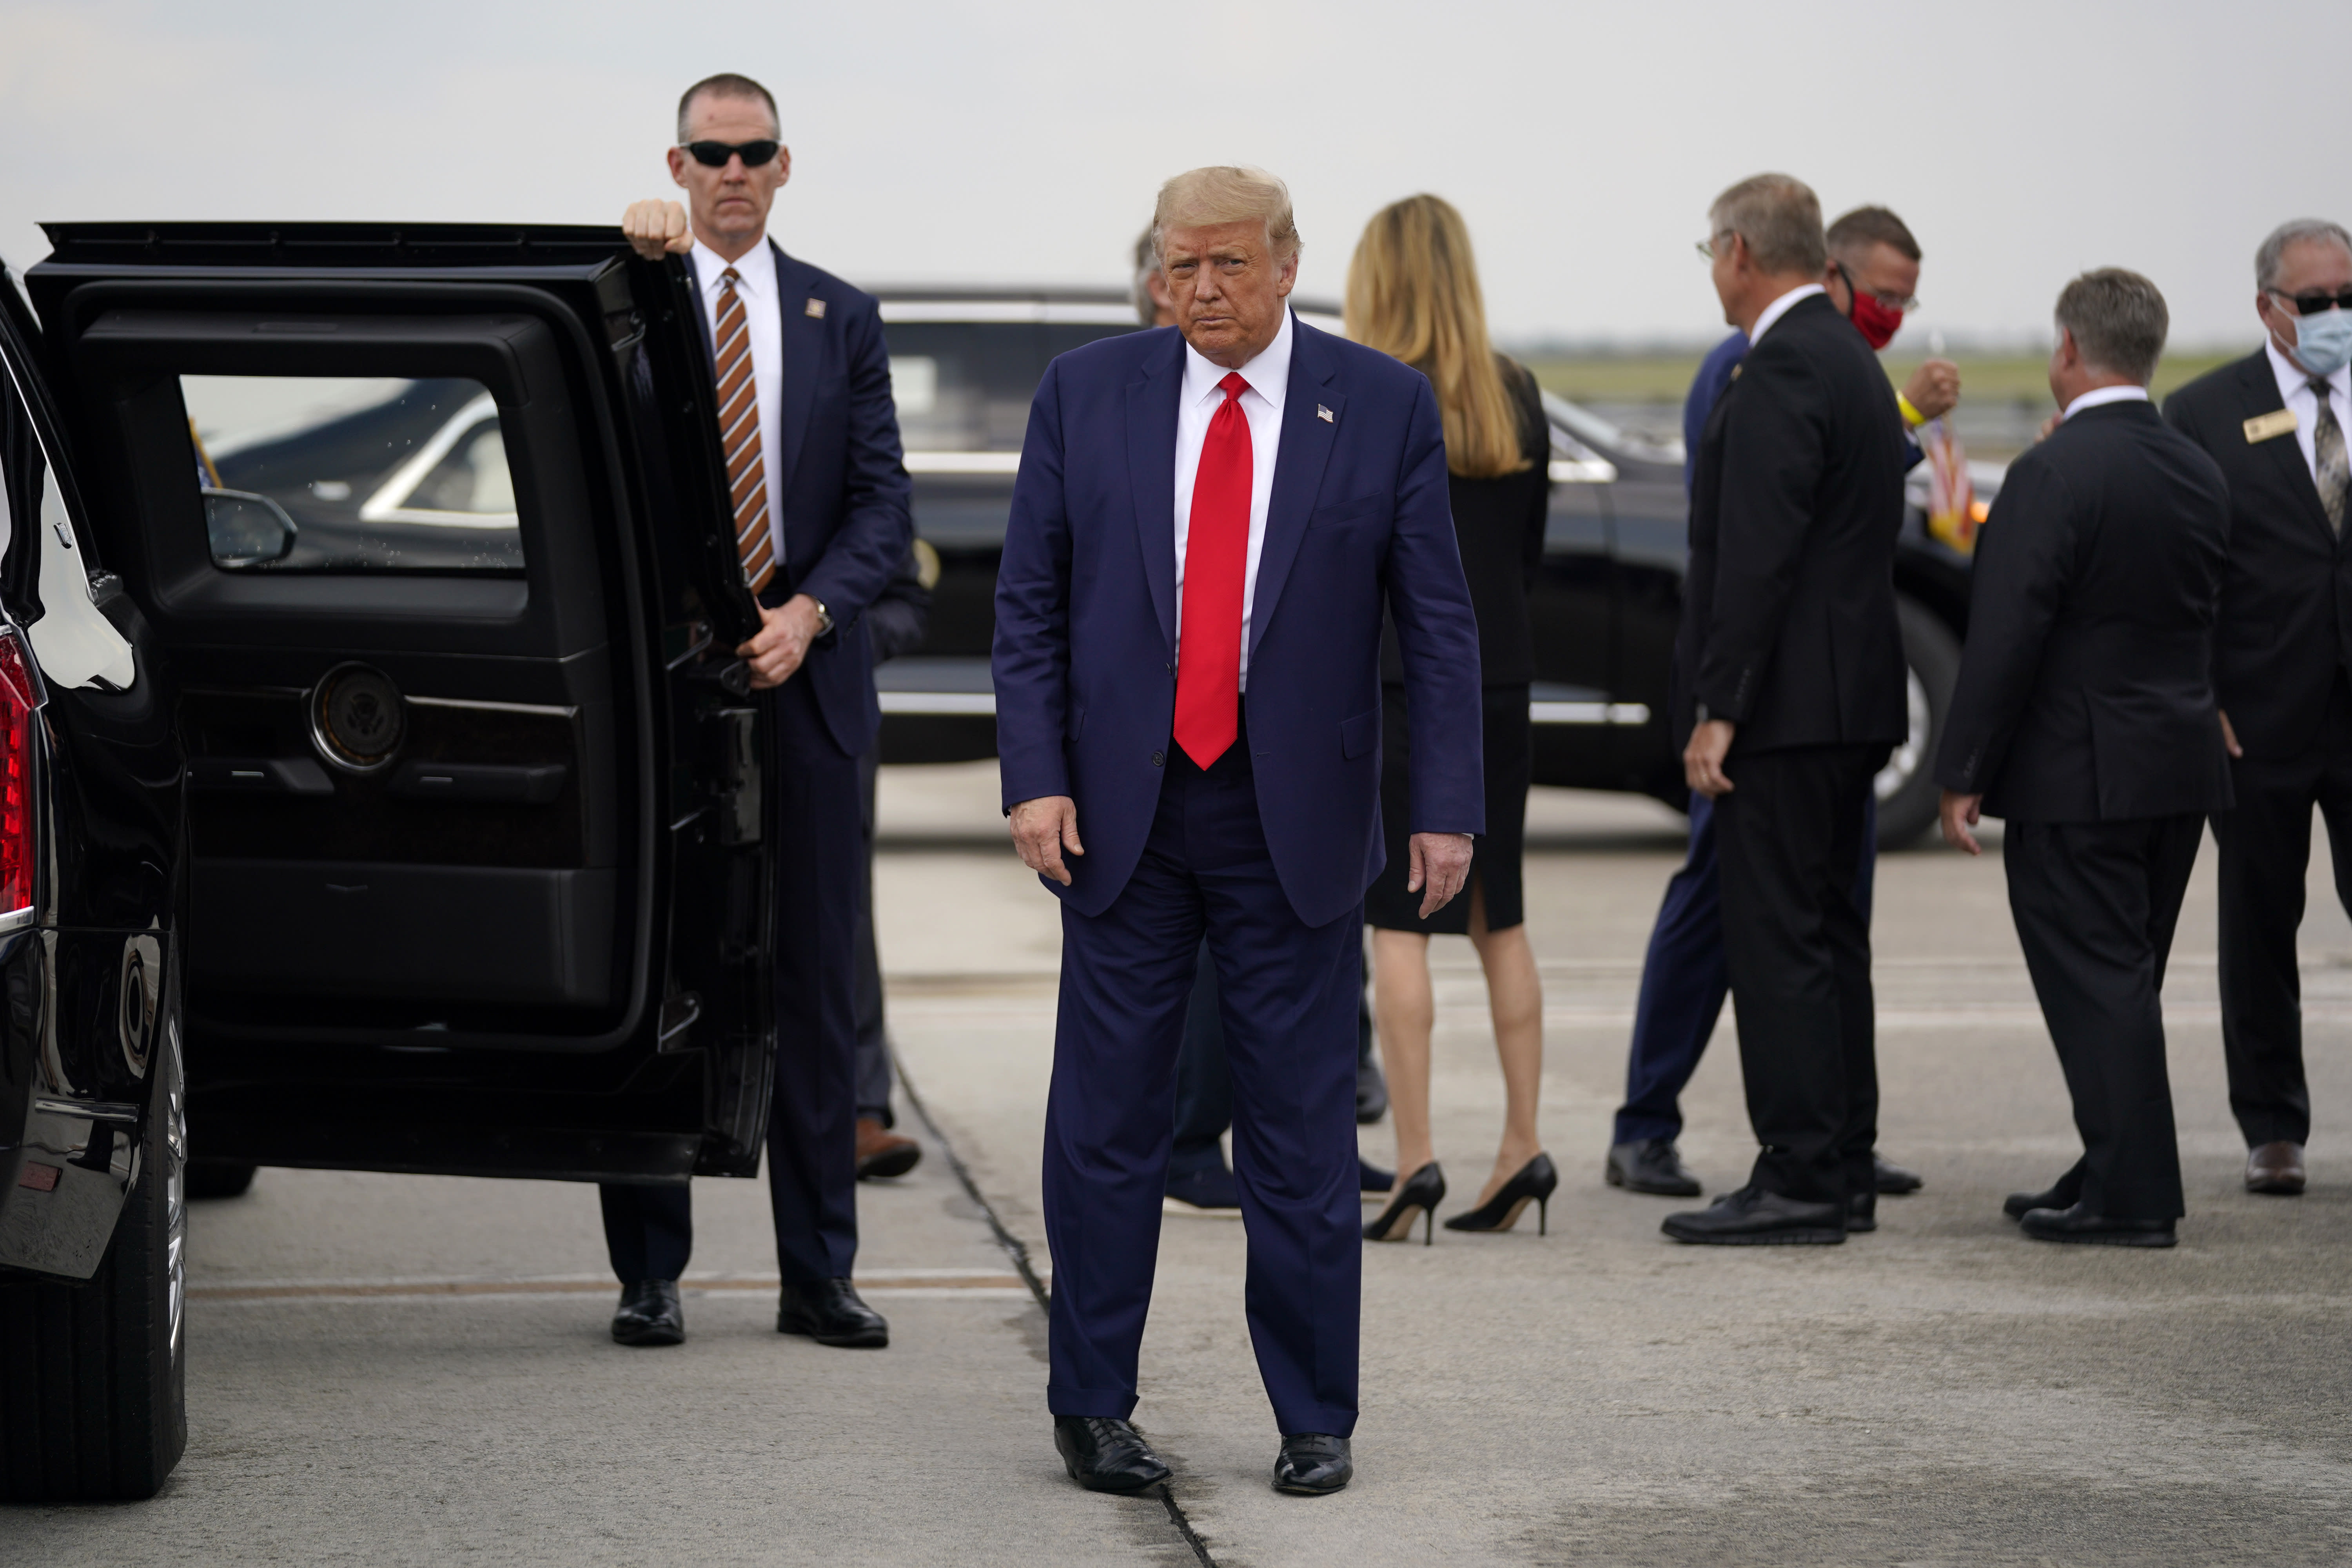 President Donald arrives at Hartsfield-Jackson International Airport, Wednesday, July 15, 2020, in Atlanta. (AP Photo/Evan Vucci)